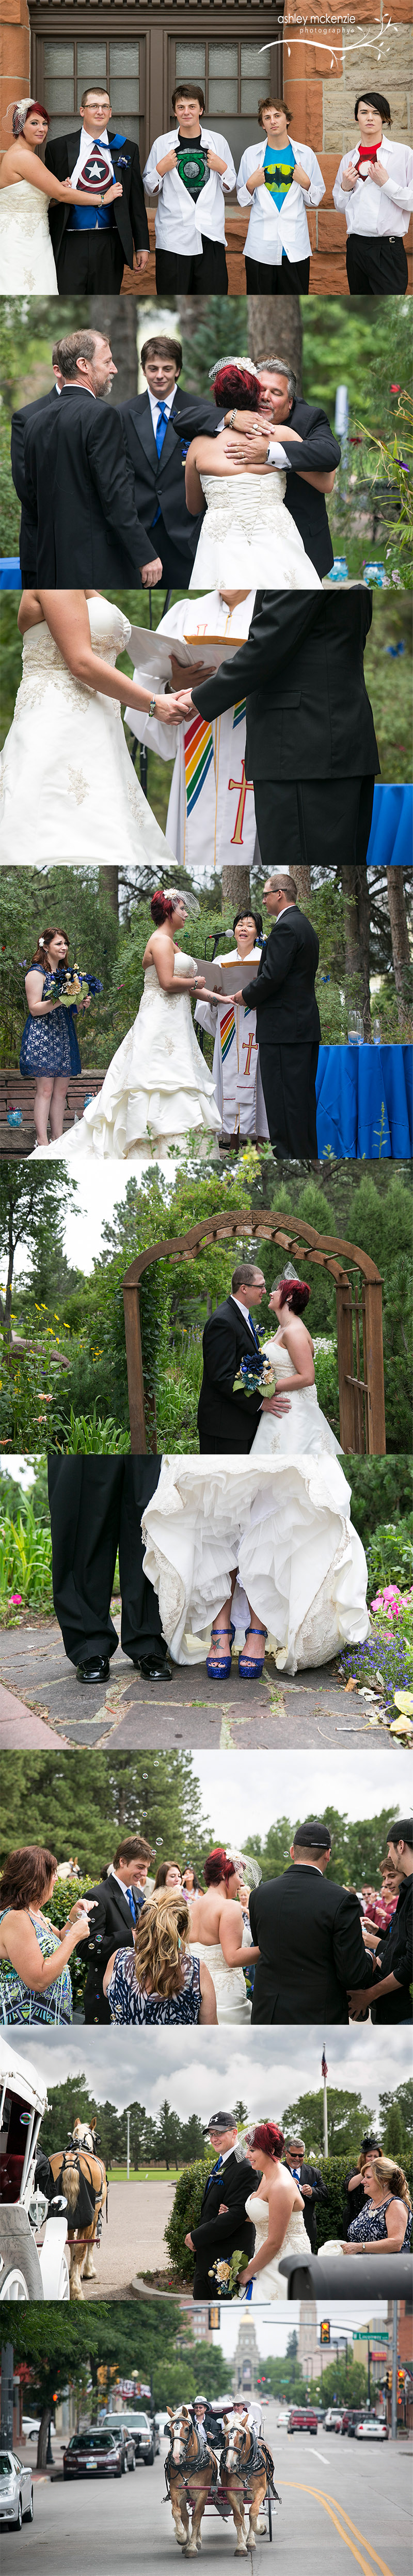 Wedding Photography by Ashley Mckenzie Photography in Cheyenne, Wyoming